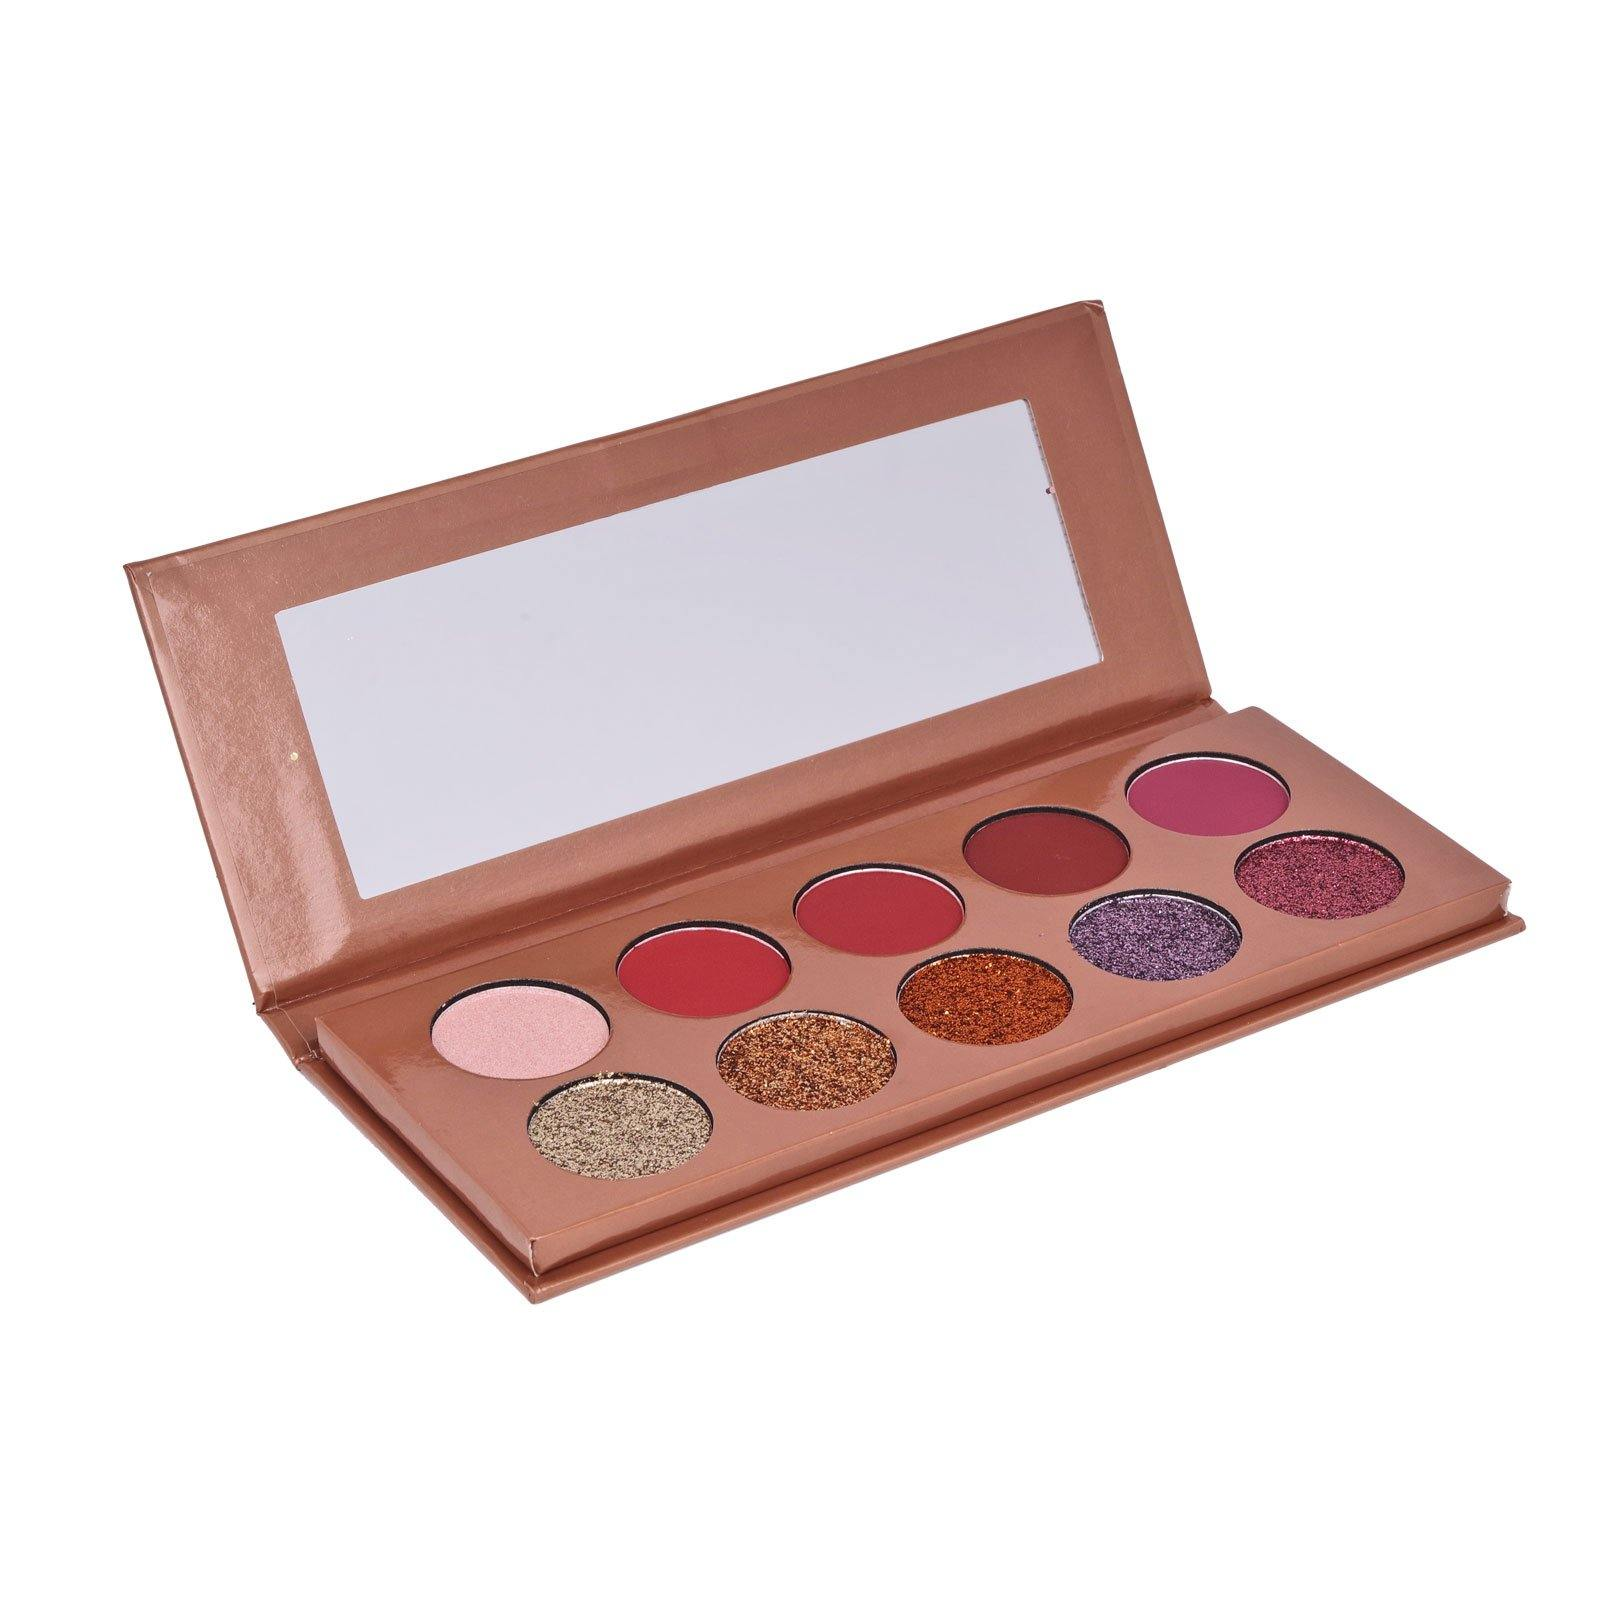 Trend Beauty, Tb10ga, Glitter Rose Gold Eyeshadow, Ten shades of glitters and mattes eyeshadow palette (12/cs)